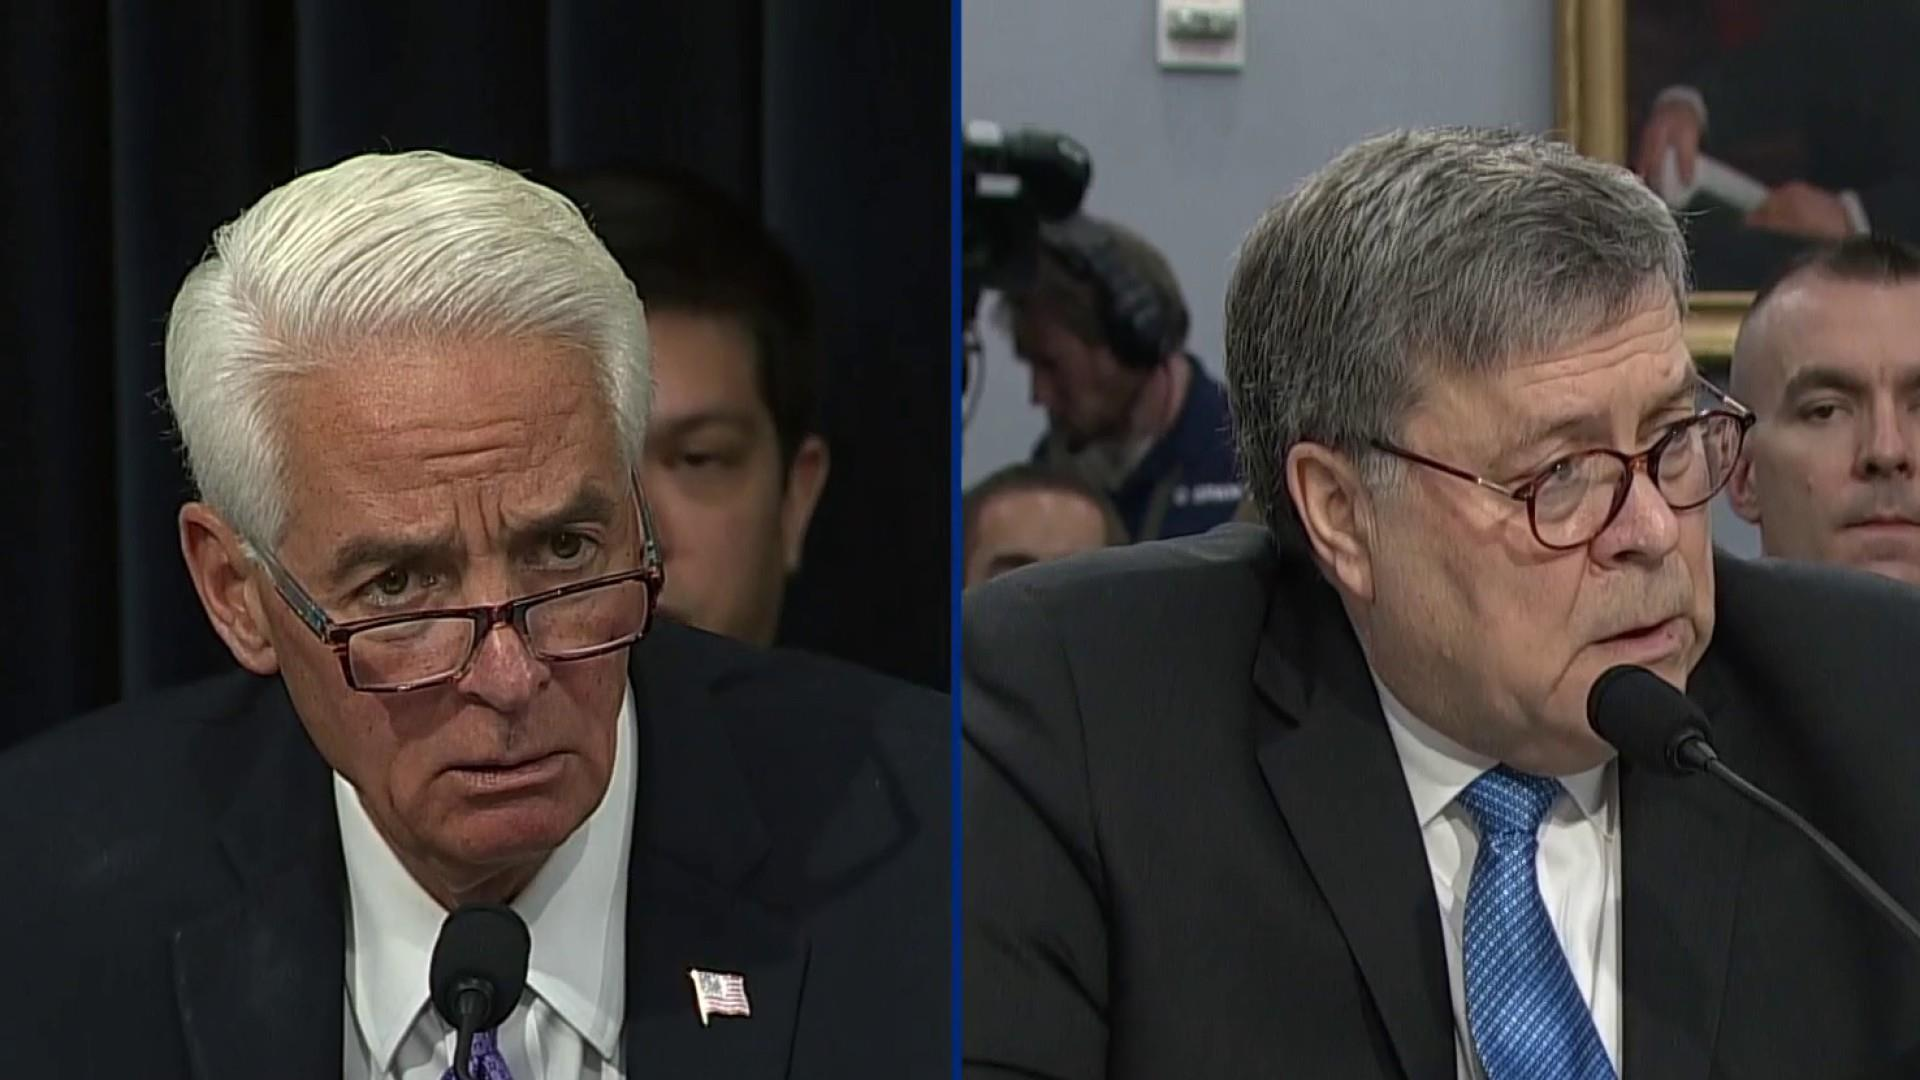 Democrat blasts Trump AG Barr testimony: Shocking and disturbing